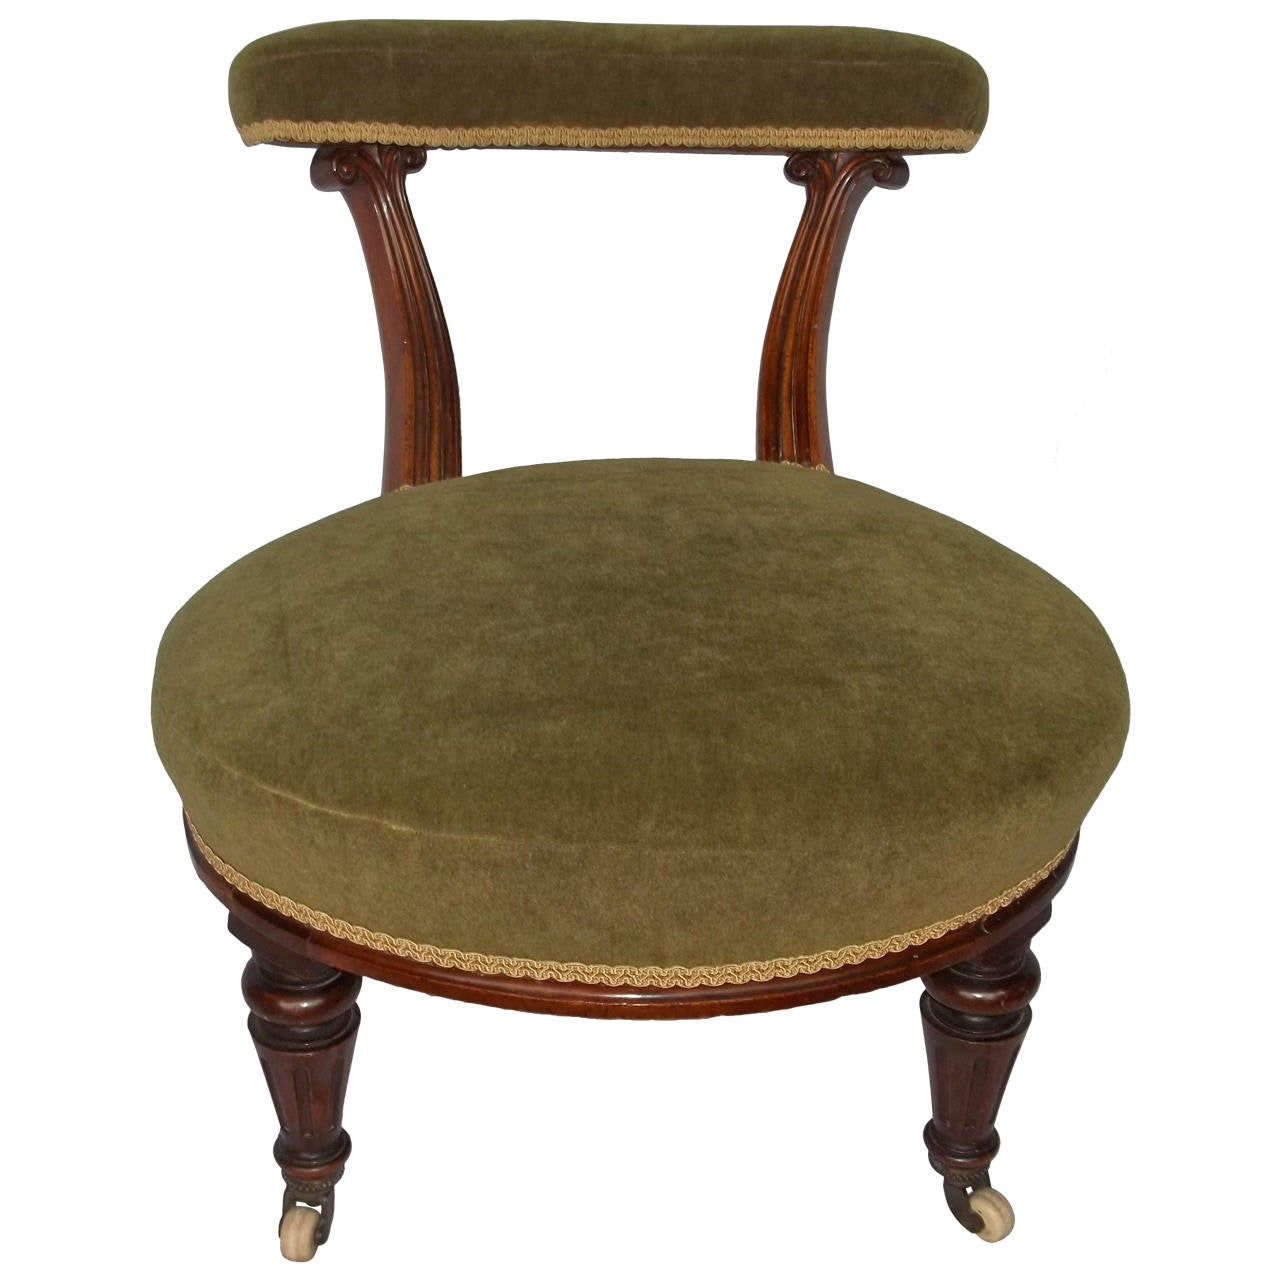 William IV Nursing Chair Hand-Carved Walnut, English, circa 1830